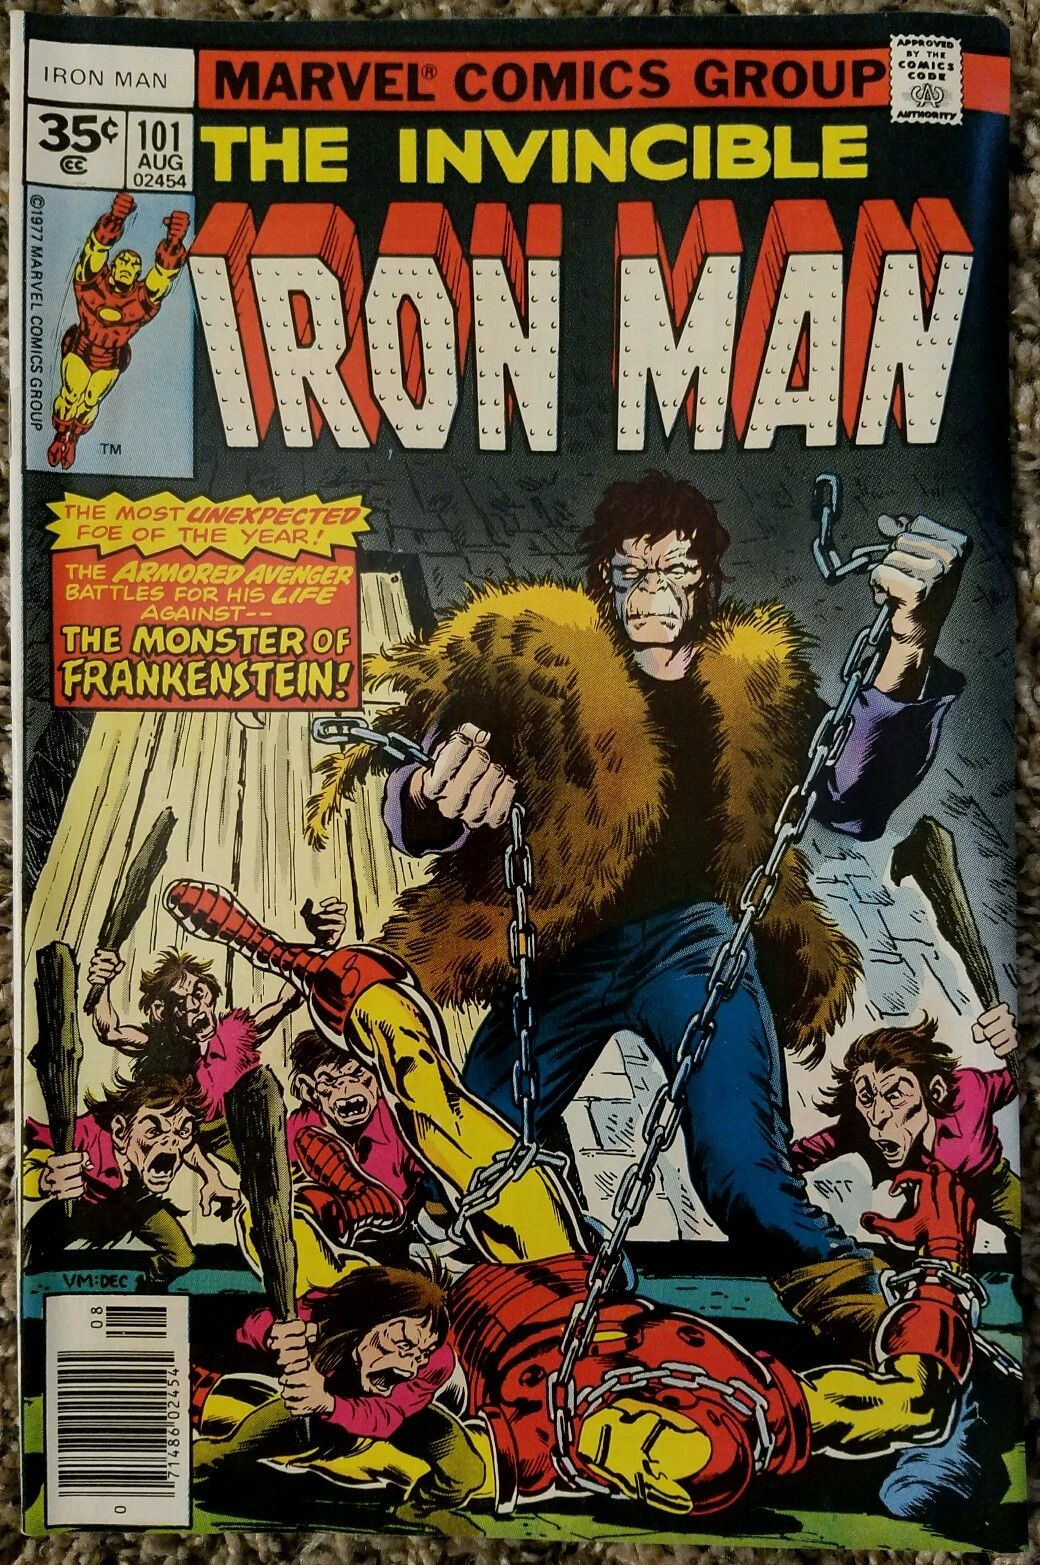 INVINCIBLE IRON MAN 101 35 CENT VARIANT AUGUST 1977 MARVEL COMICS HI GRADE RARE